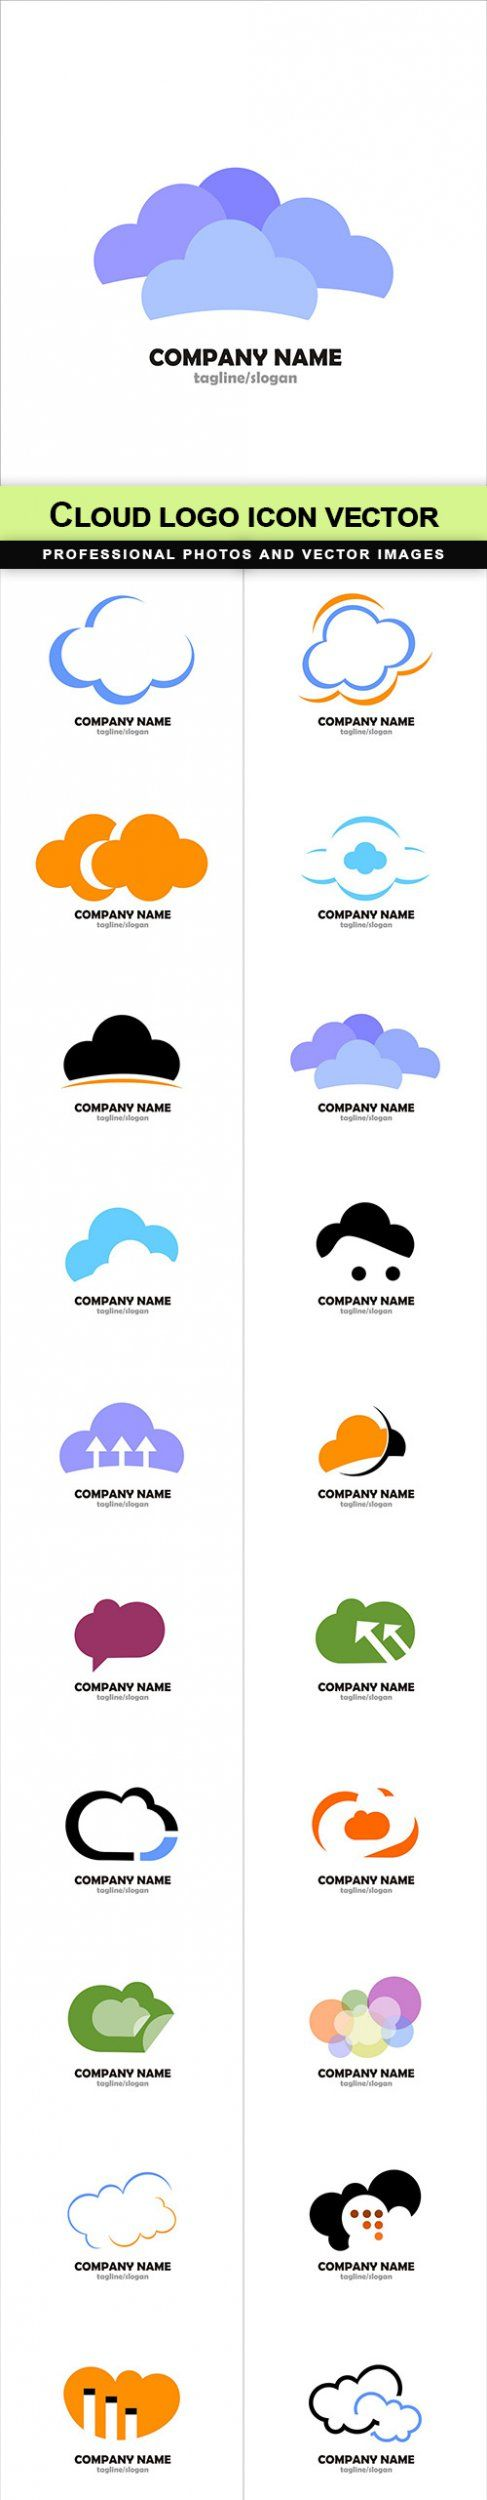 best images about logo logo design graphics and cloud logo icon vector make beautiful logos these little clouds them for